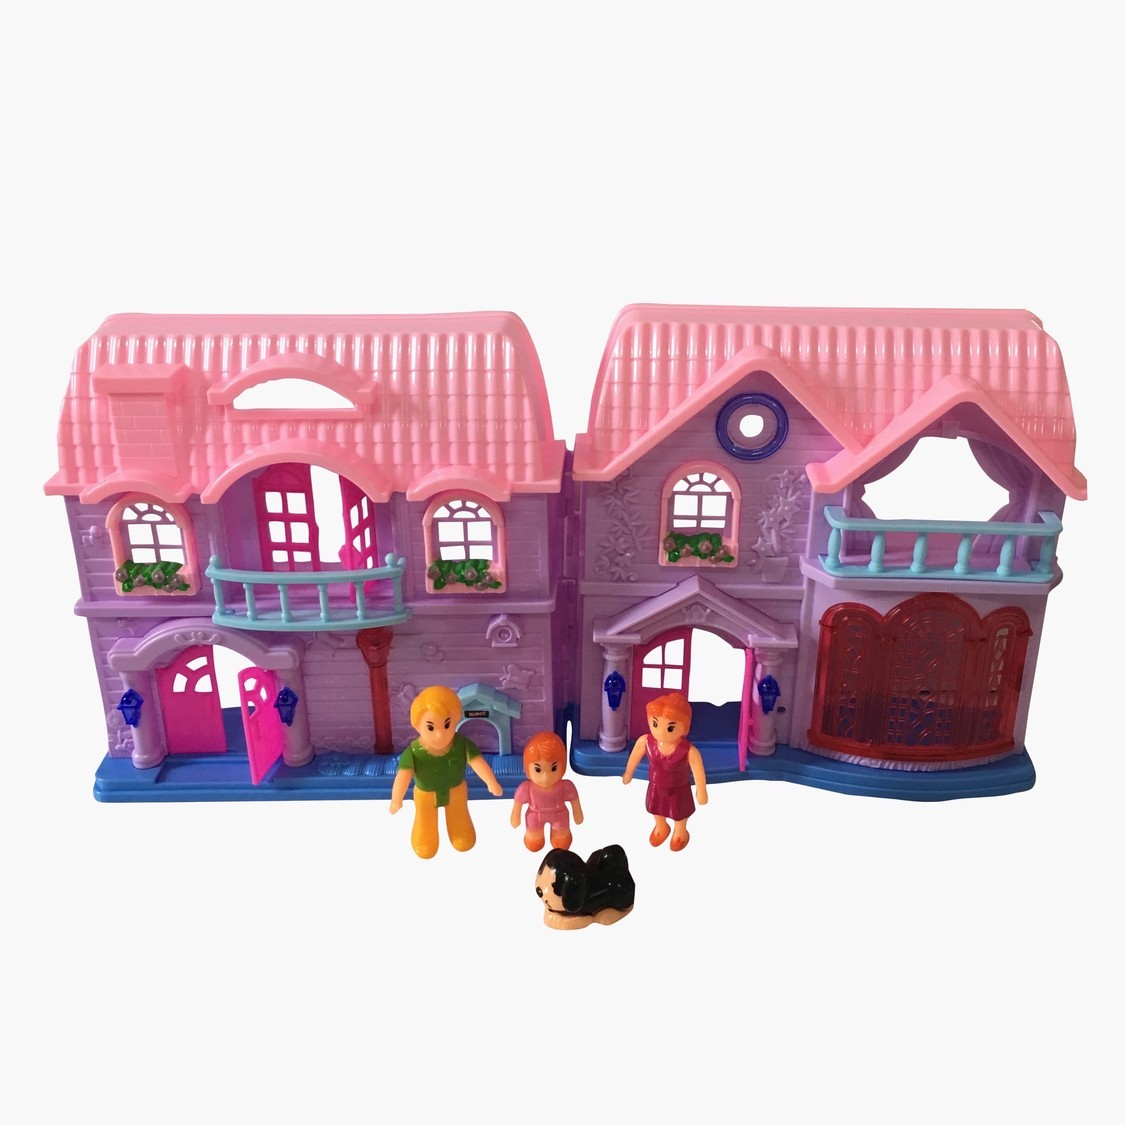 Dollhouse Playset